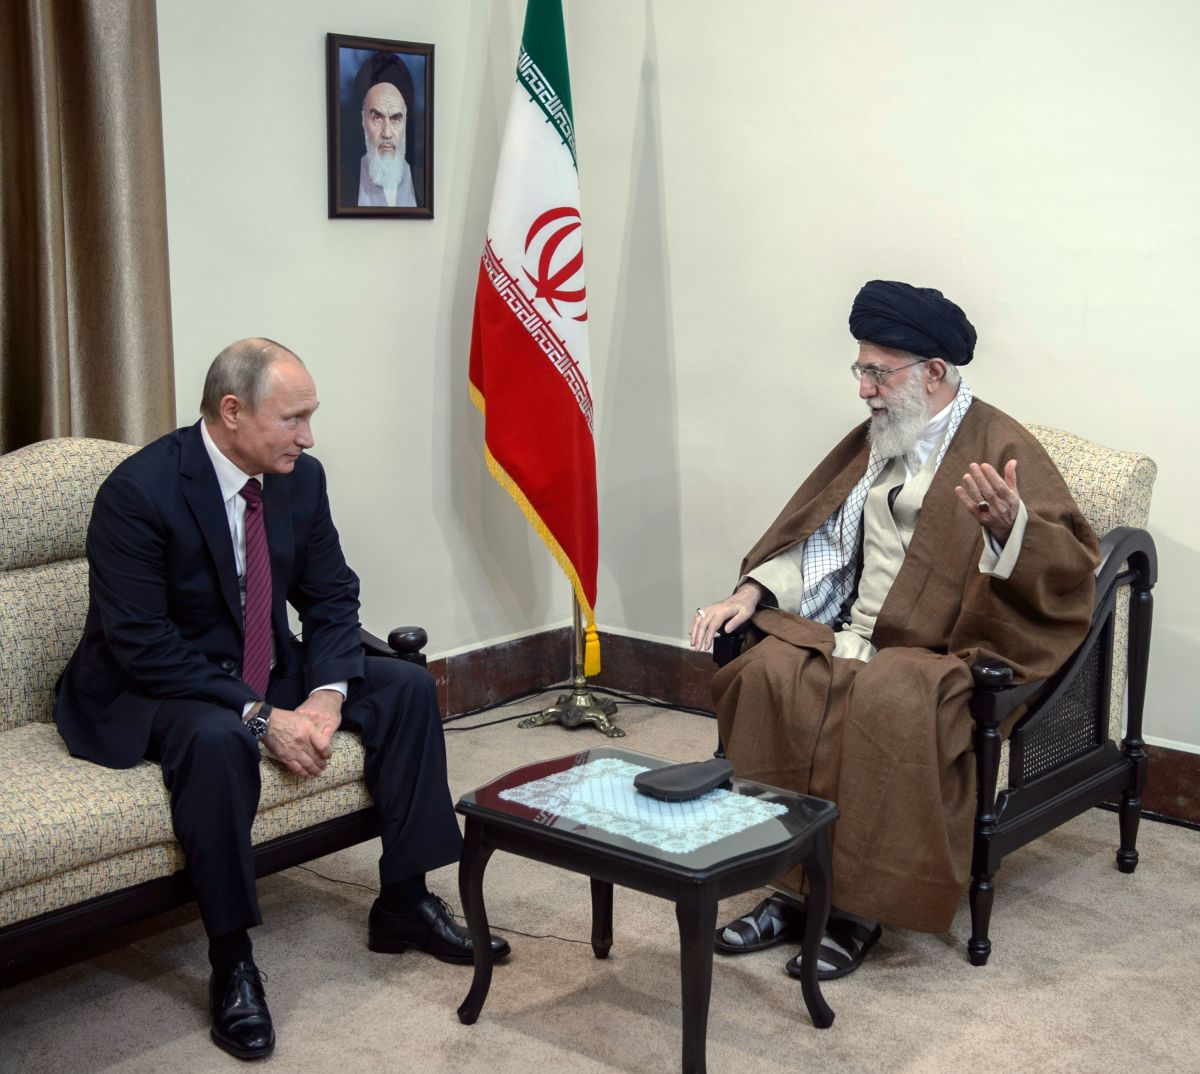 Russian President Vladimir Putin meets with Iran's Supreme Leader Ayatollah Ali Khamenei in Tehran on November 1st, 2017